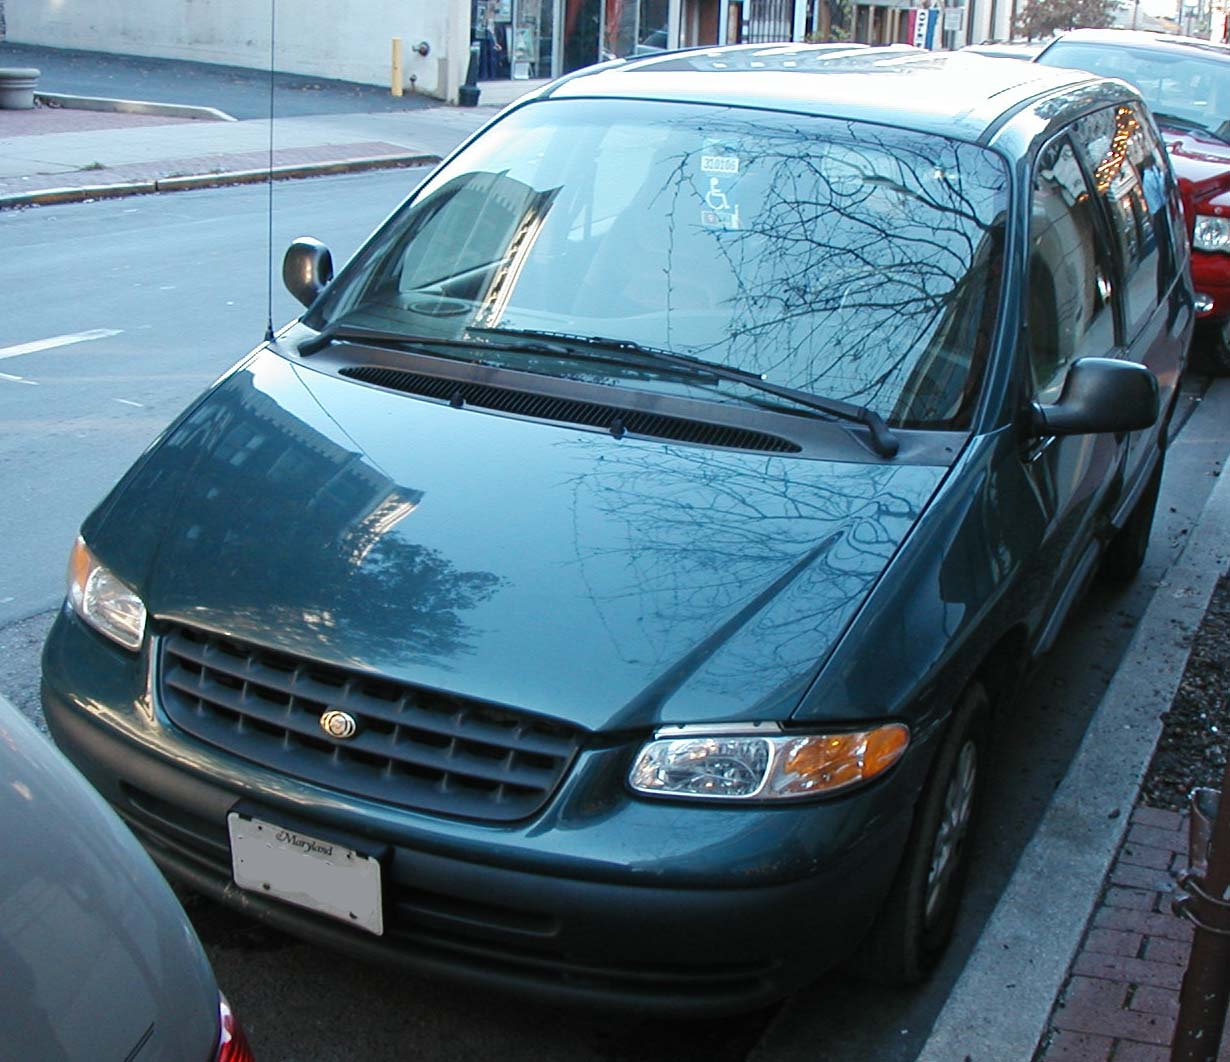 2000 Chrysler Voyager Photos, Informations, Articles